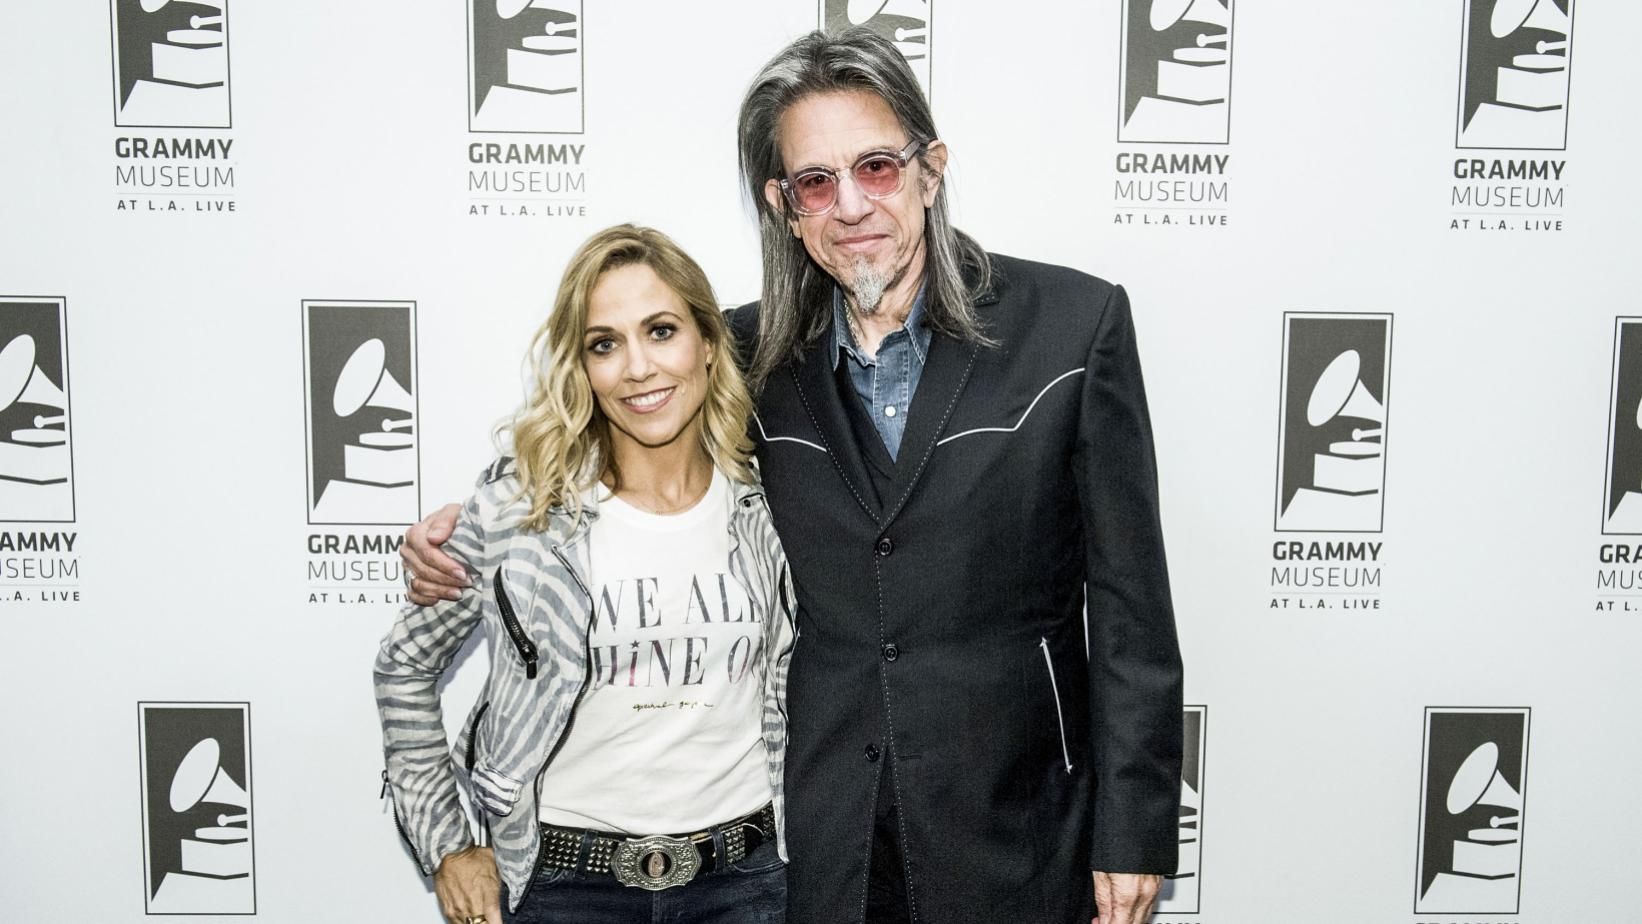 Sheryl Crow and Scott Goldman at the GRAMMY Museum